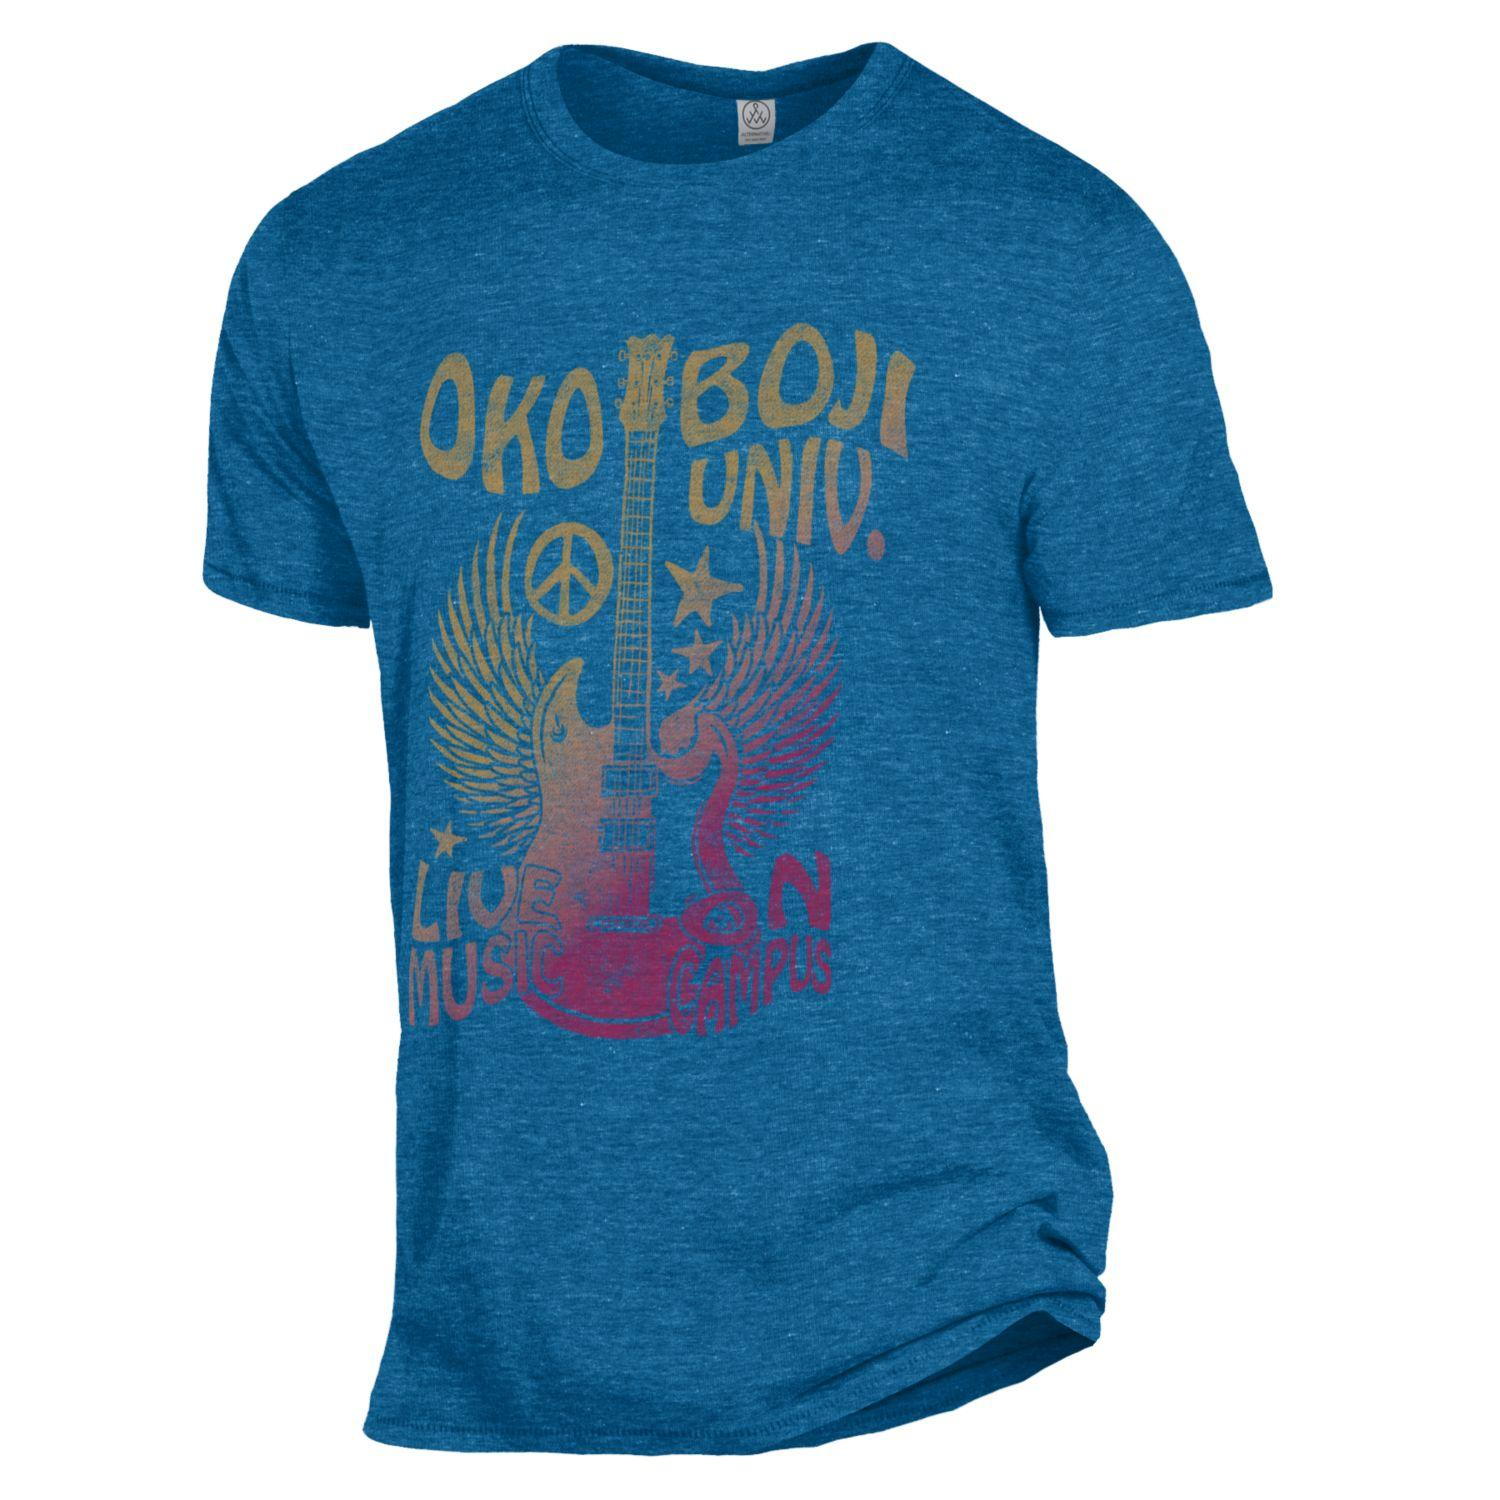 University of Okoboji Live Music Tee